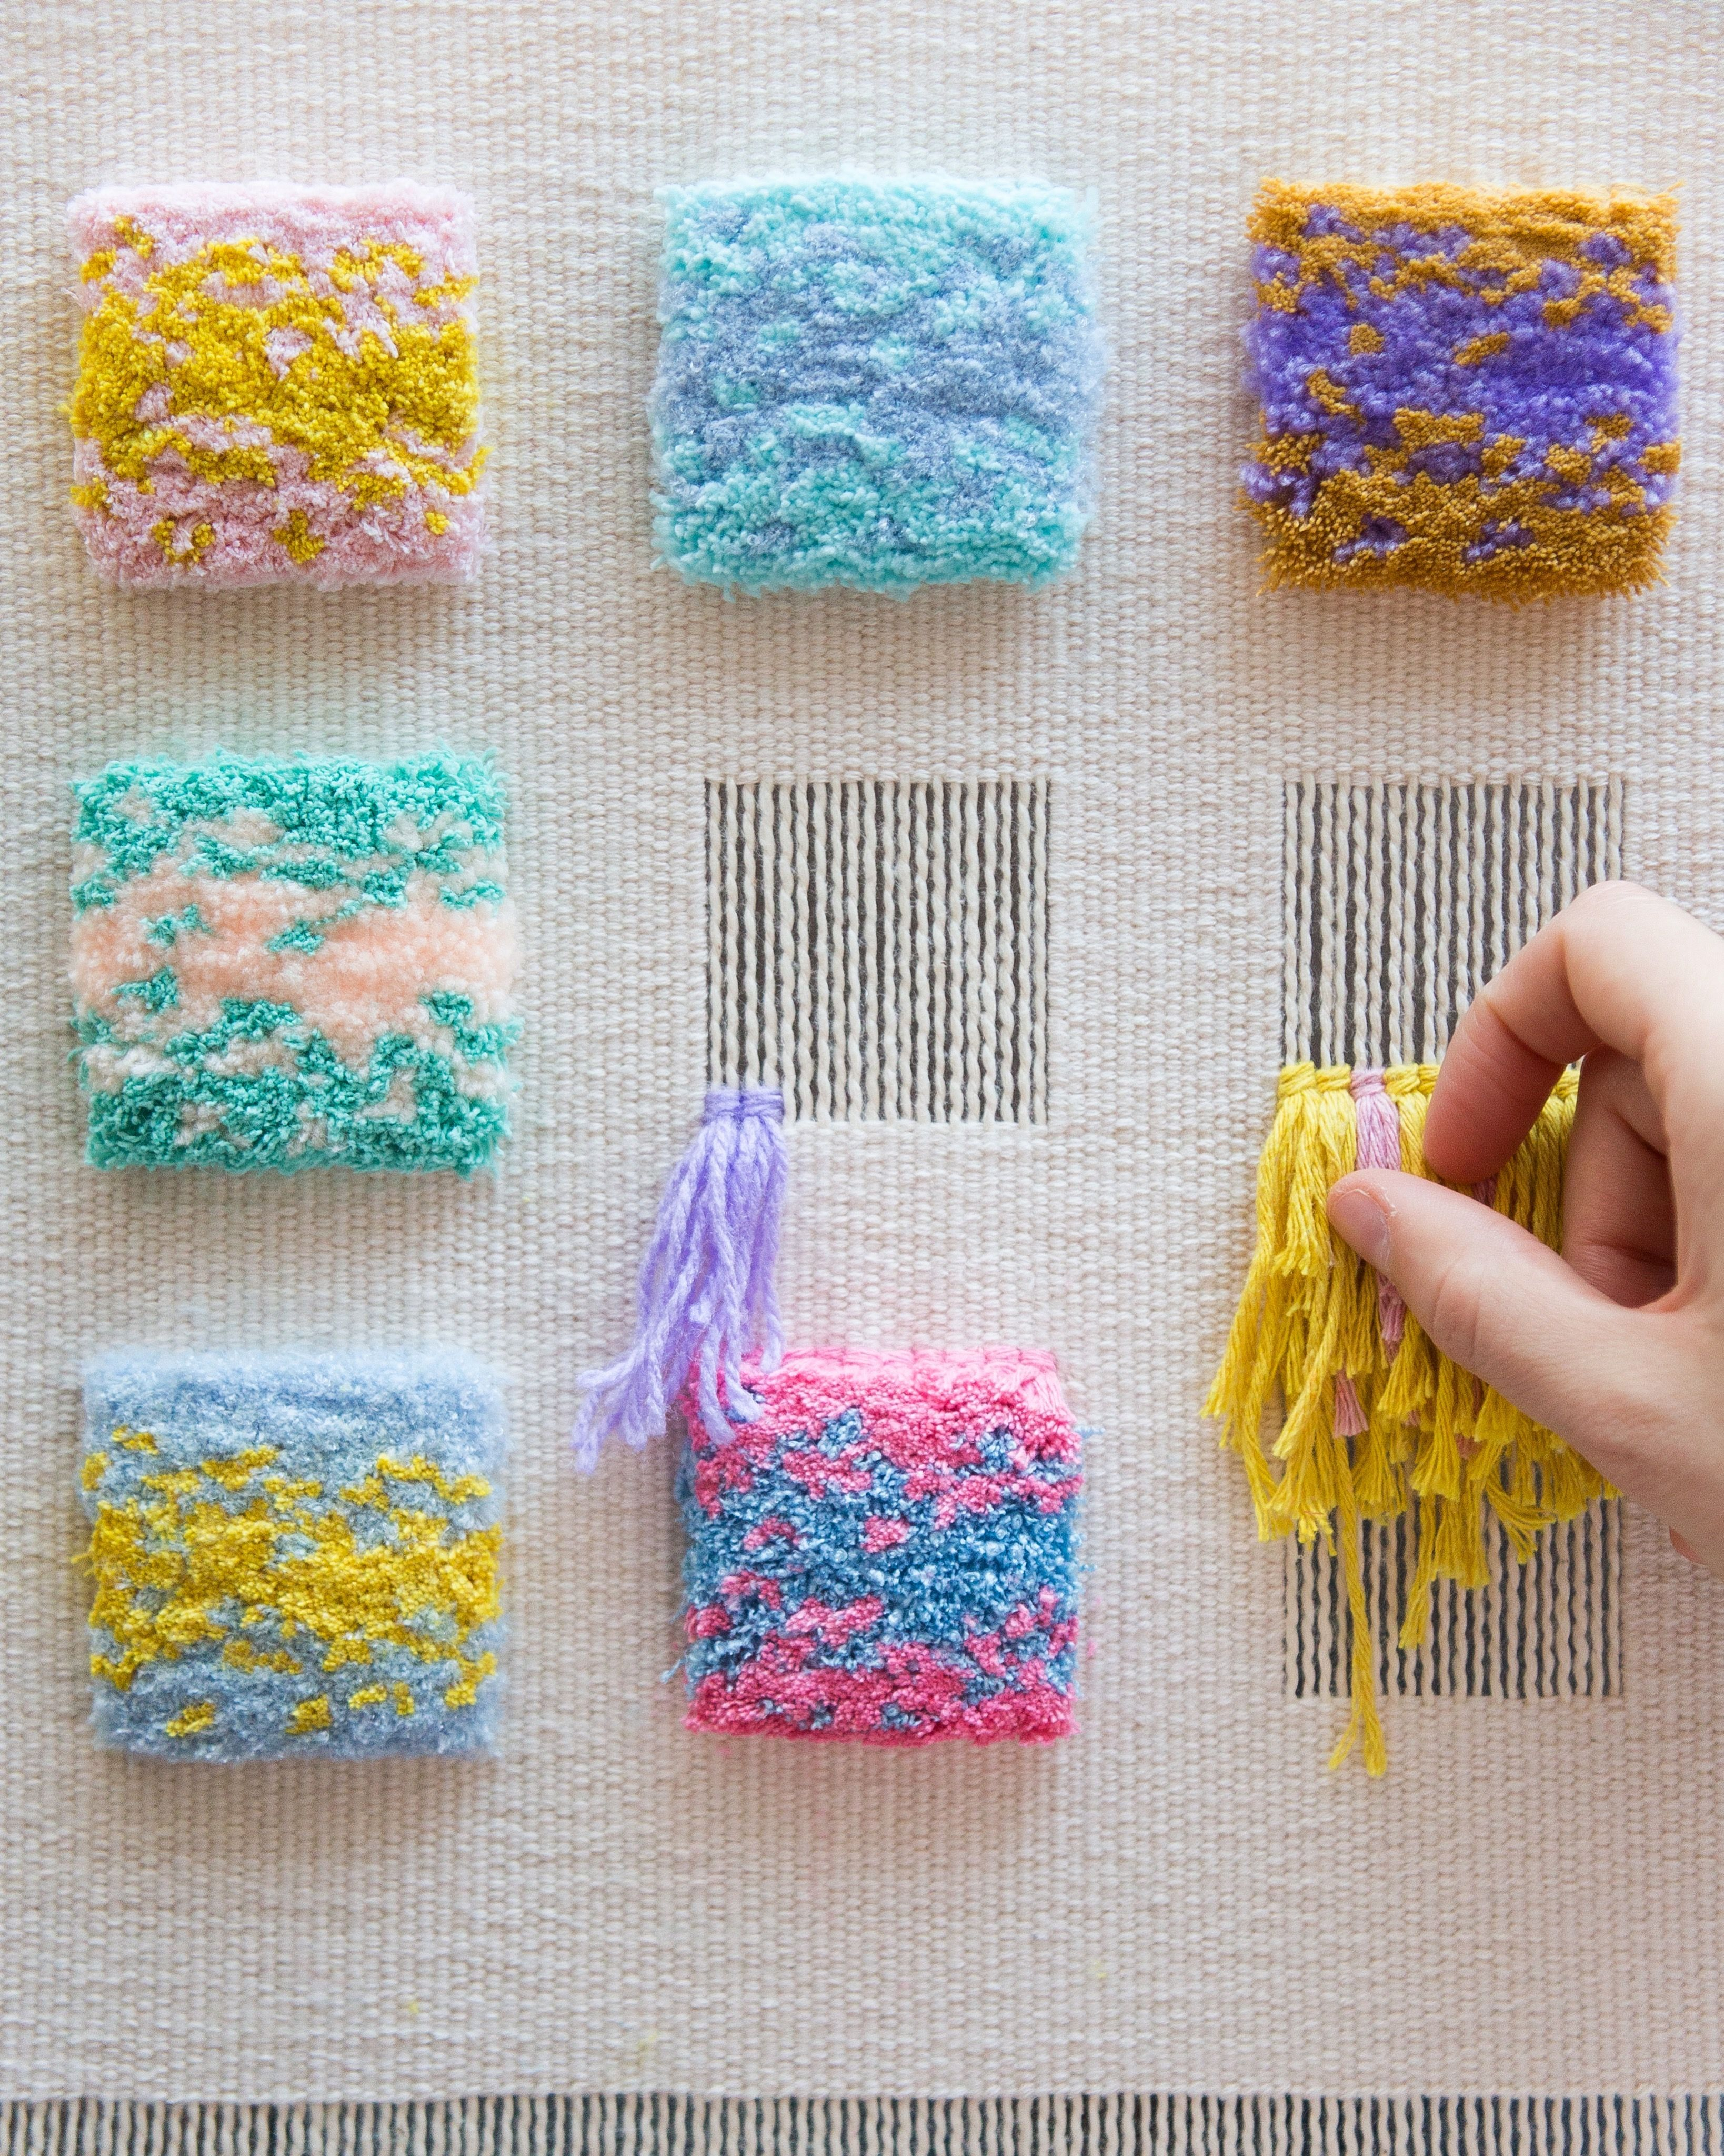 Episode 71: Weaving Wall Hangings with Allyson Rousseau